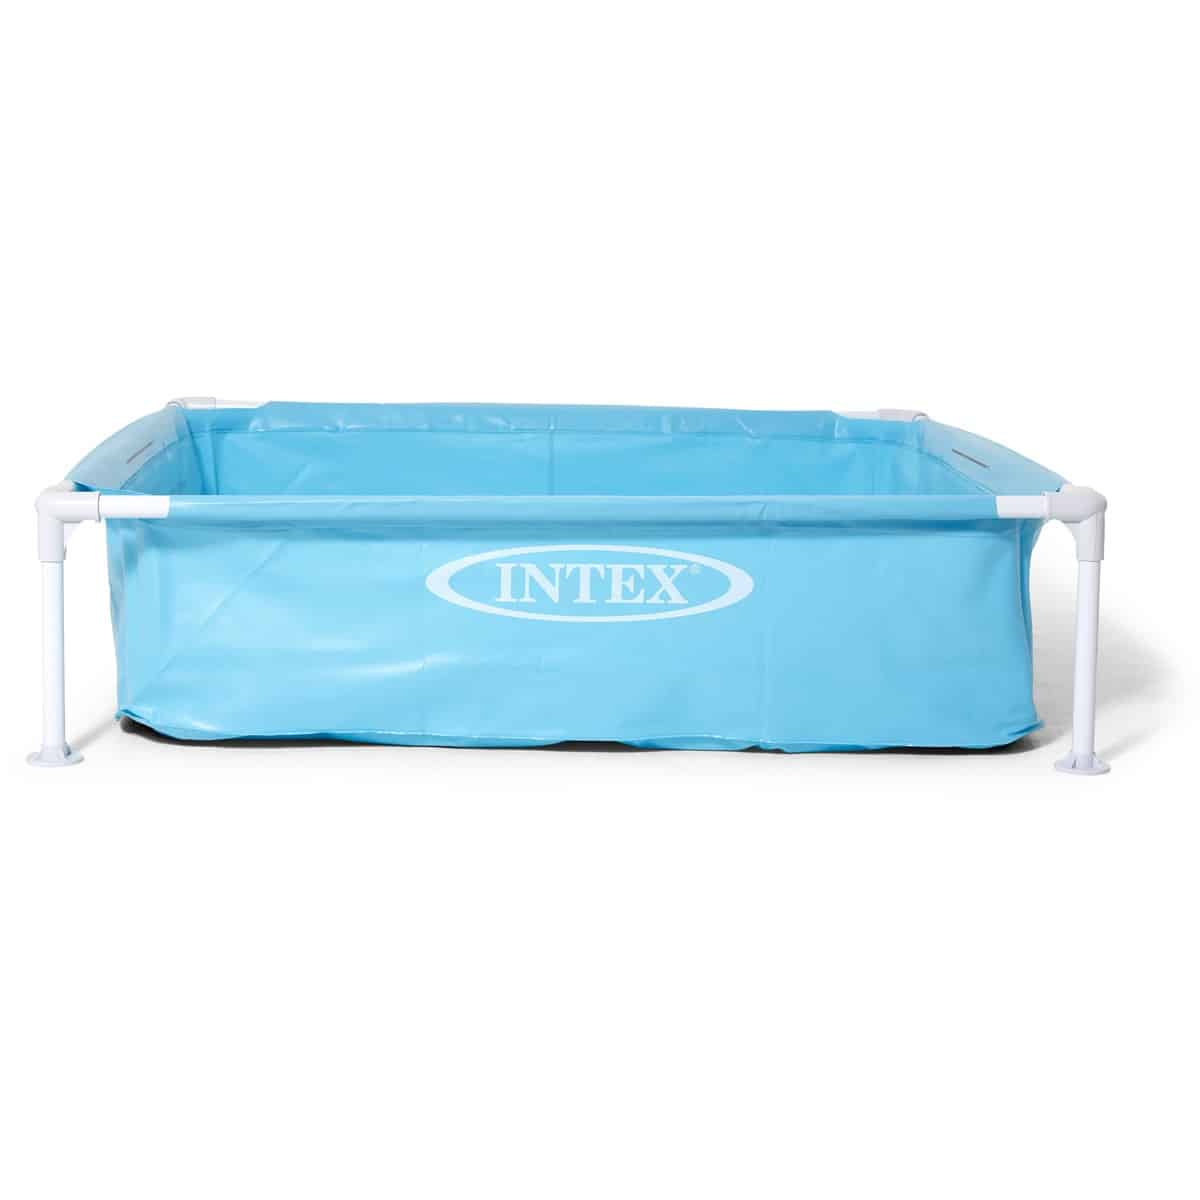 Intex Mini Frame Pool - Best mini frame pool for kids